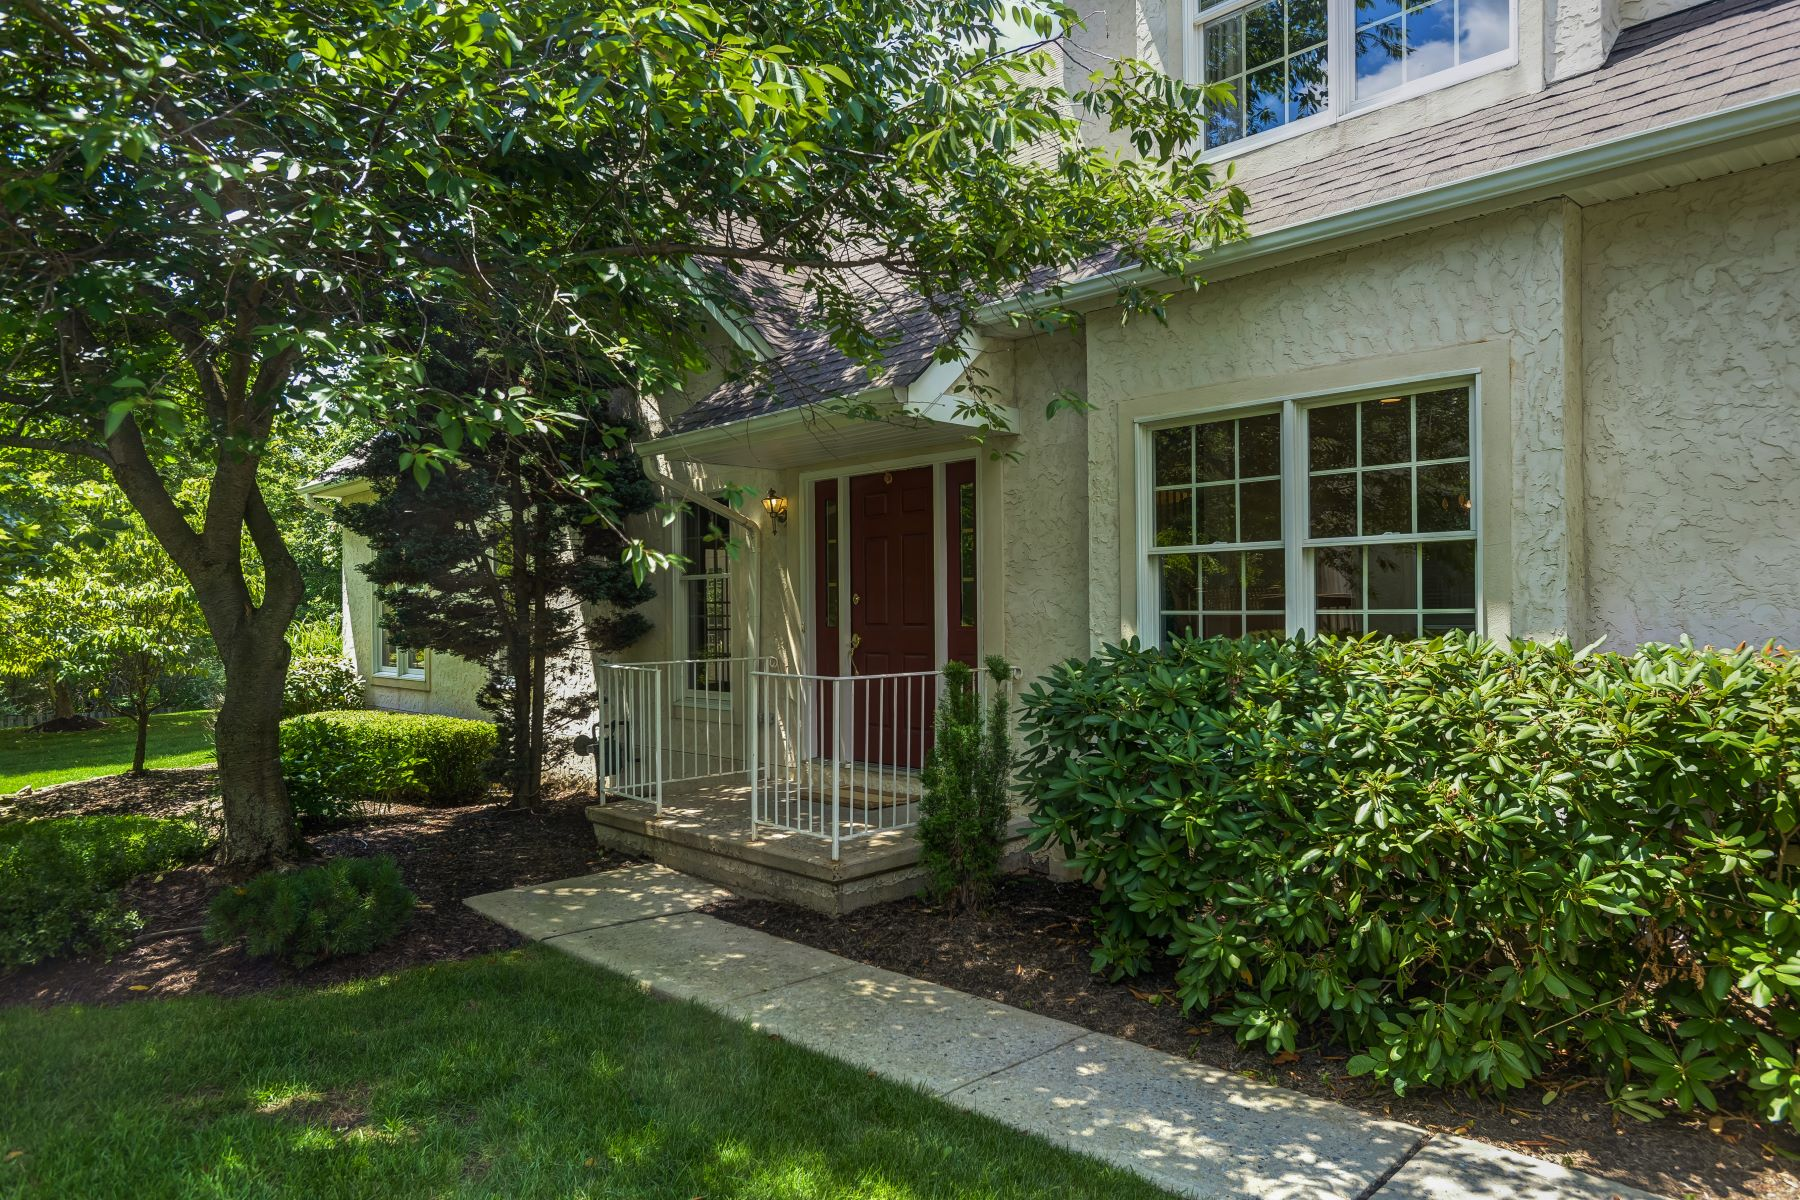 Townhouse for Sale at Spacious End Unit Townhouse 19 Georgetown Court, Basking Ridge, New Jersey 07920 United States